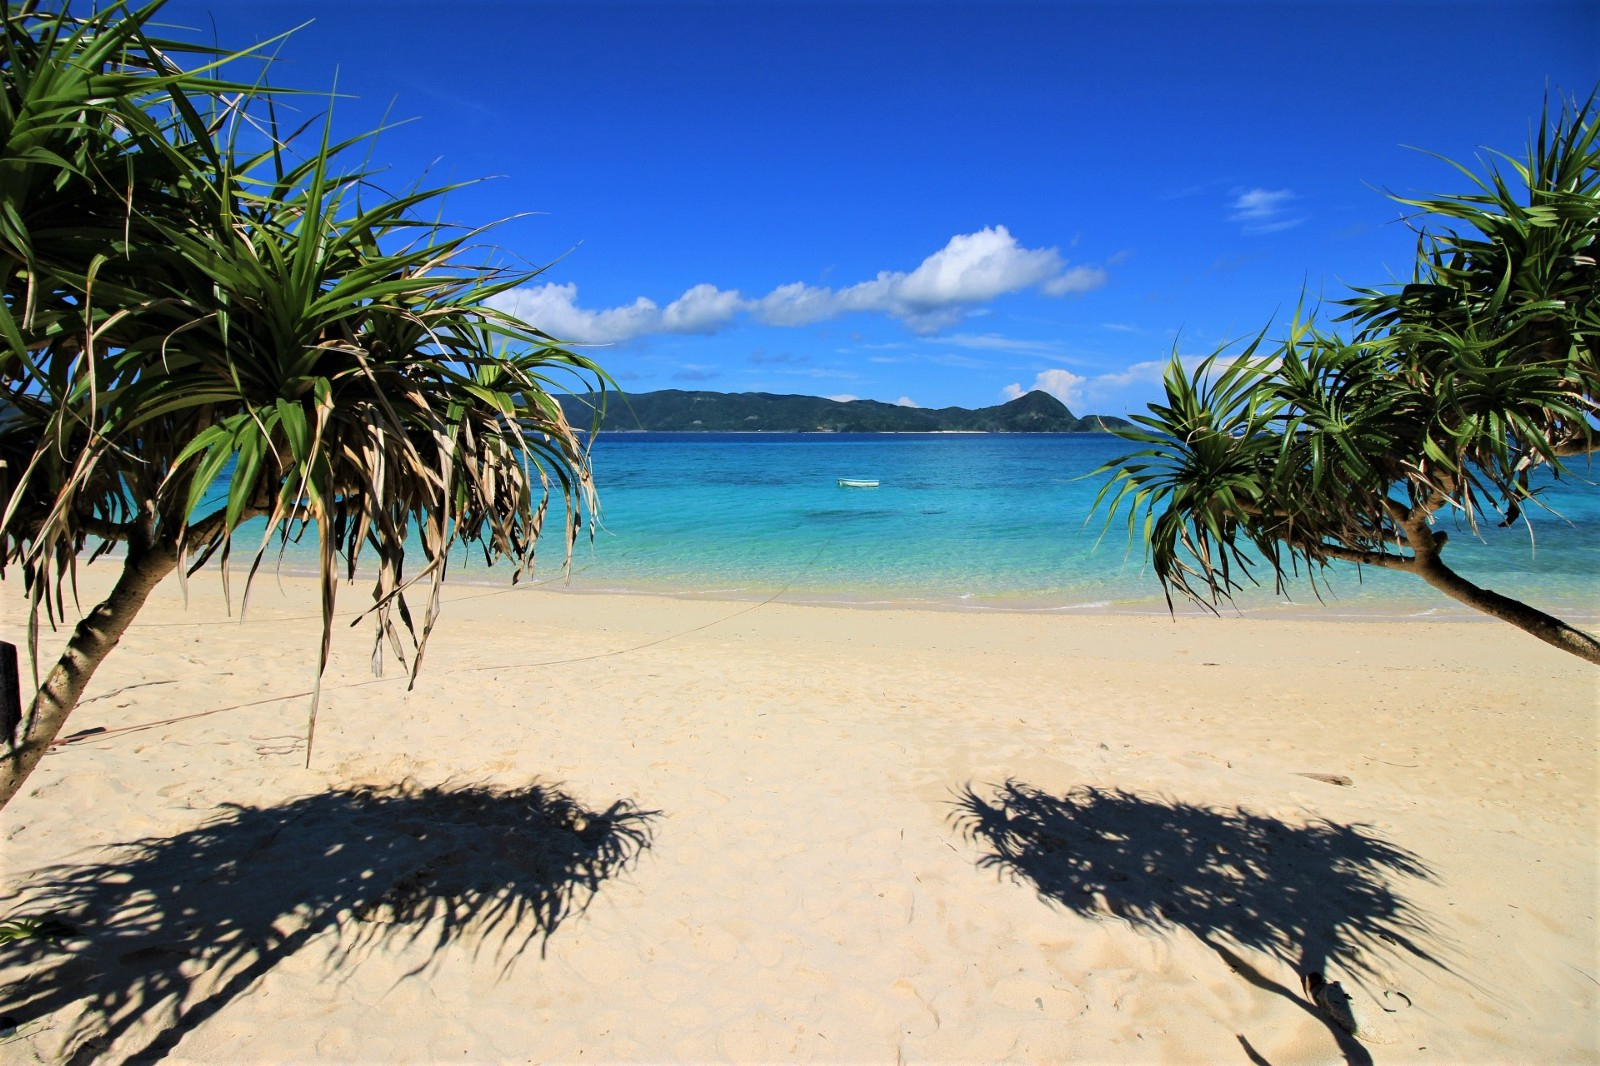 5 Best Beach Destinations in Japan apart from Okinawa